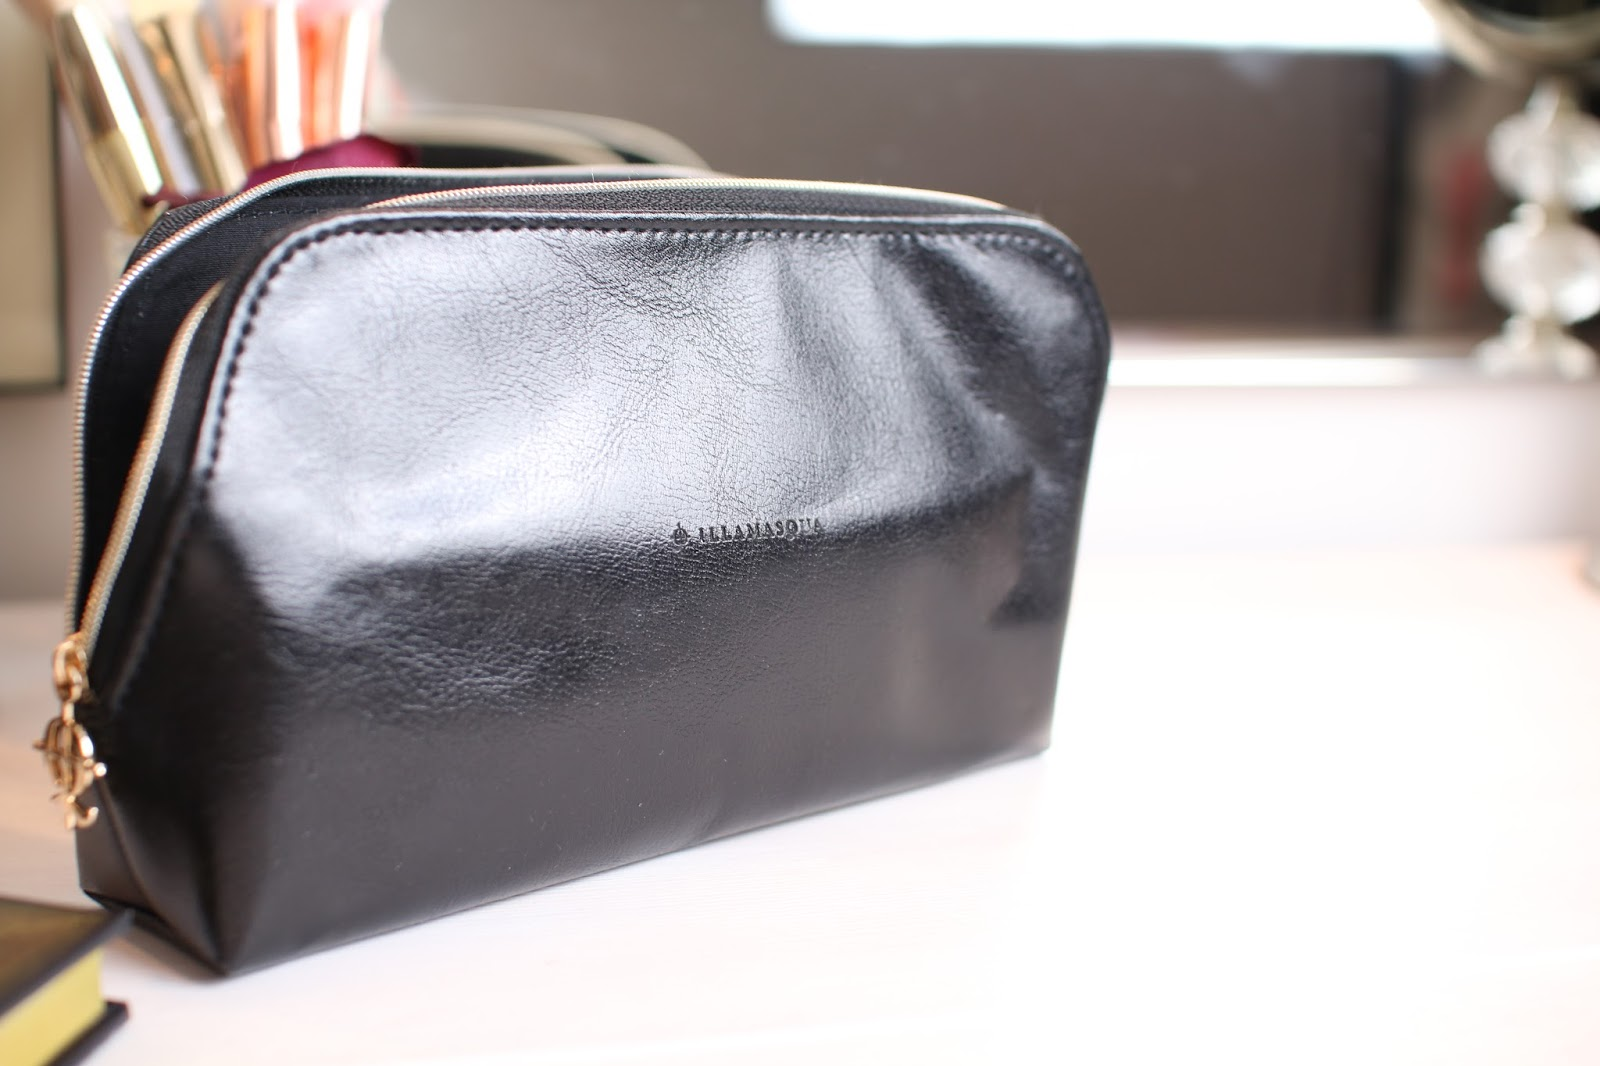 Illamasqua make up bag